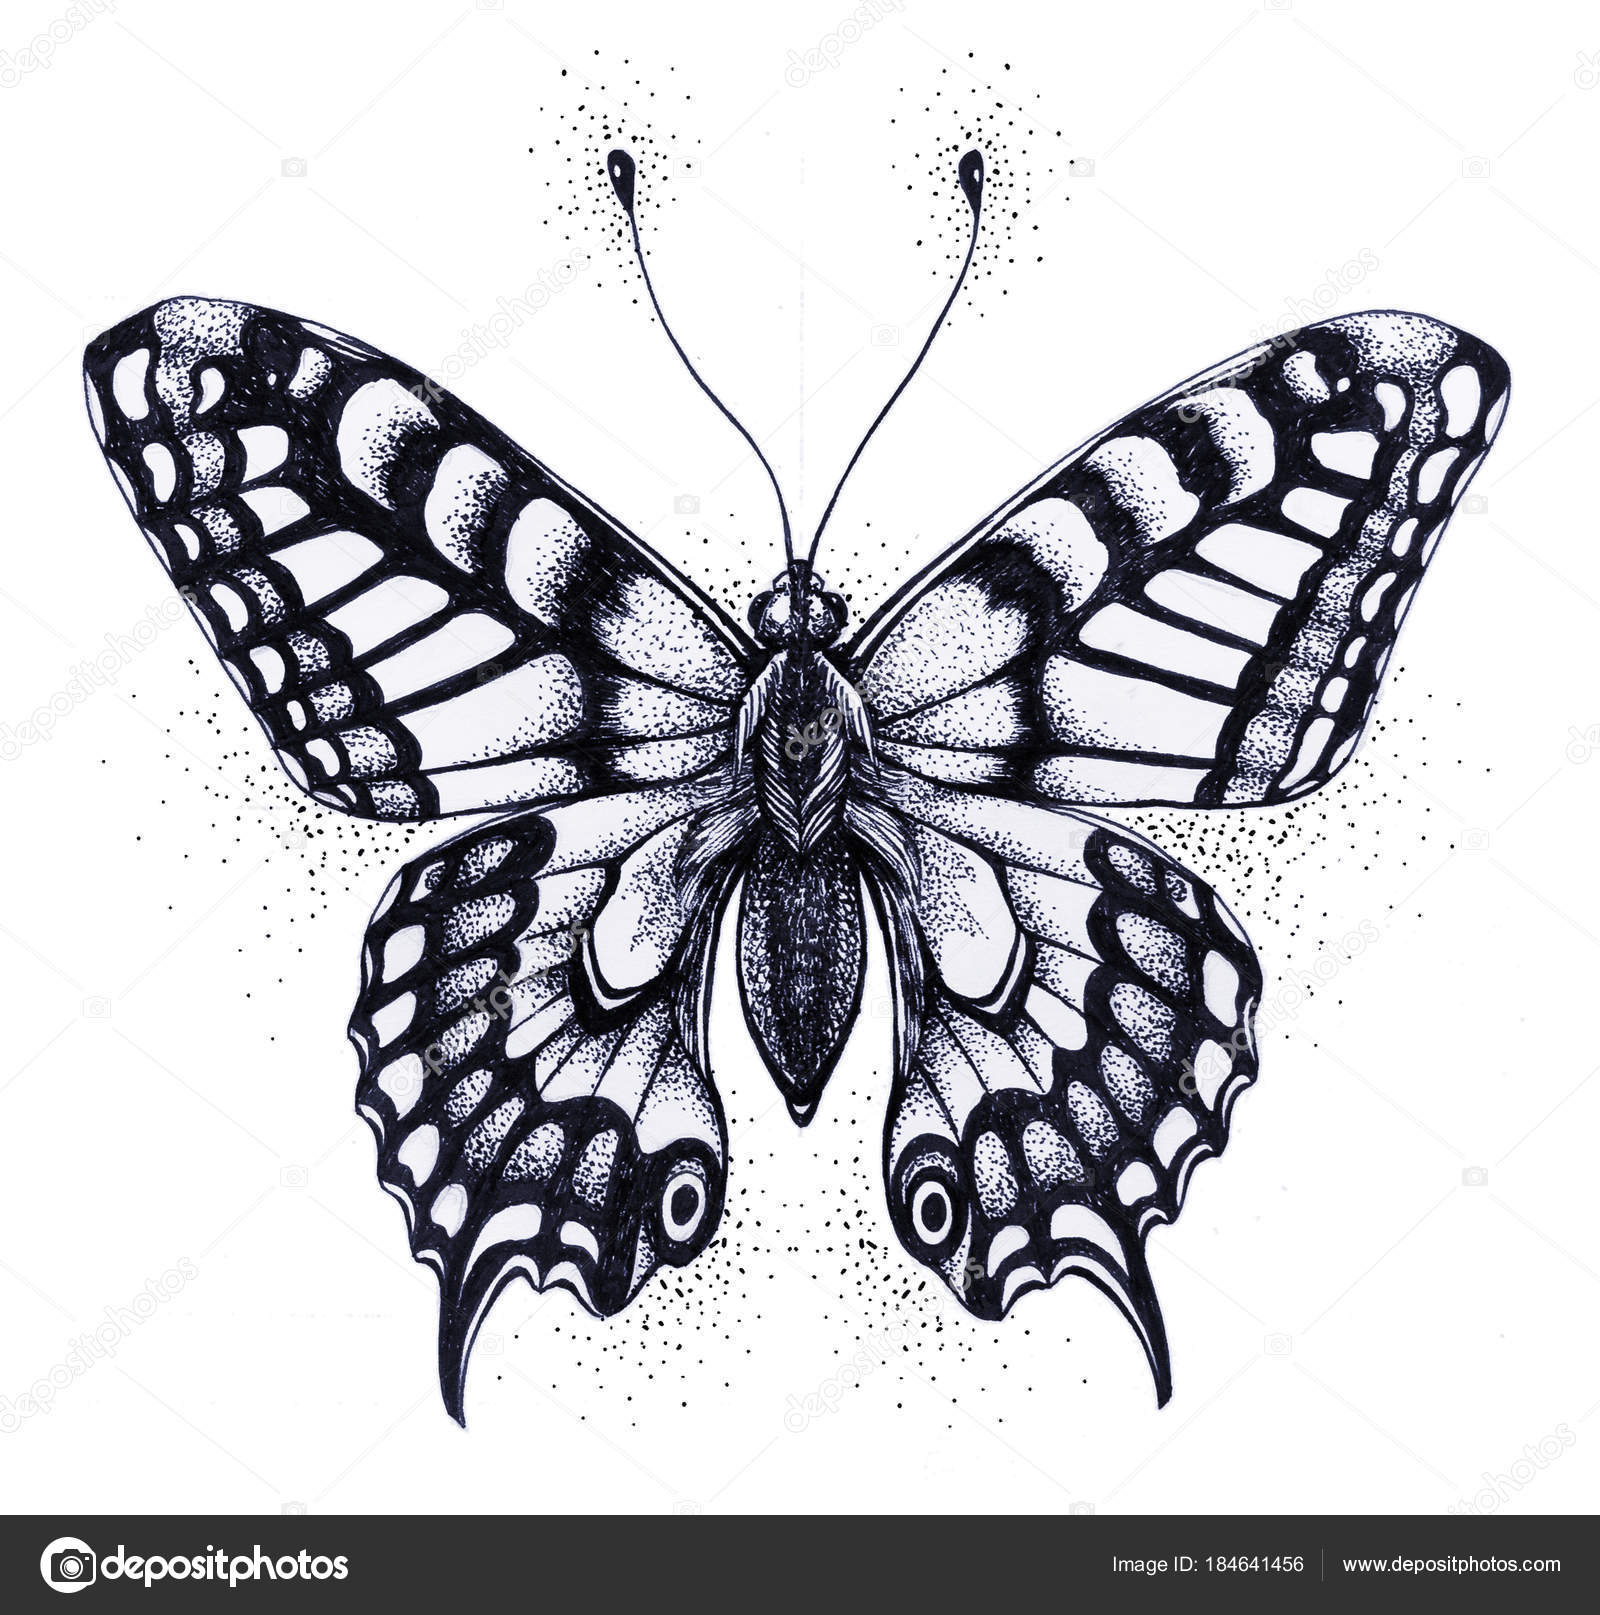 Silhouette of butterfly symbol of soul immortality rebirth and tattoo butterfly symbol of soul immortality rebirth and resurrection isolated sketch of butterfly black and white tattoo photo by natalypaint buycottarizona